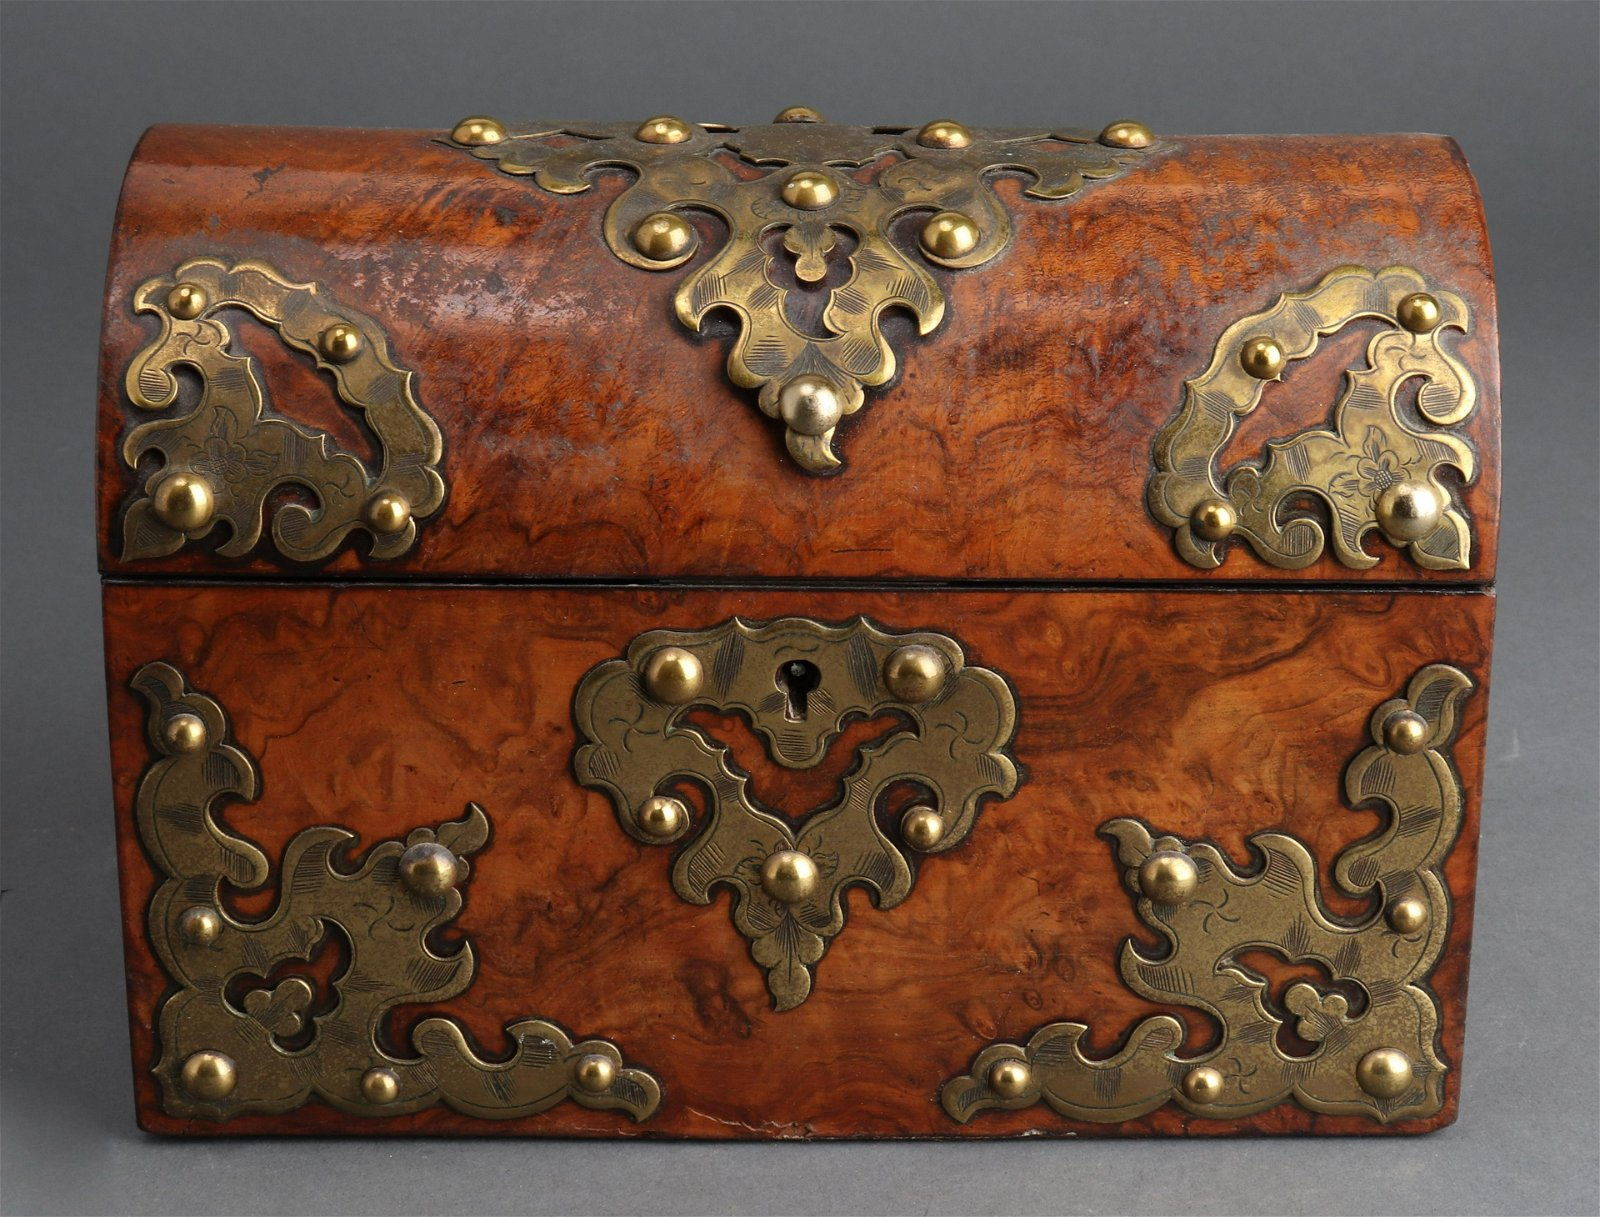 Baroque Manner Brass Mounted Letter Box, 19th C.